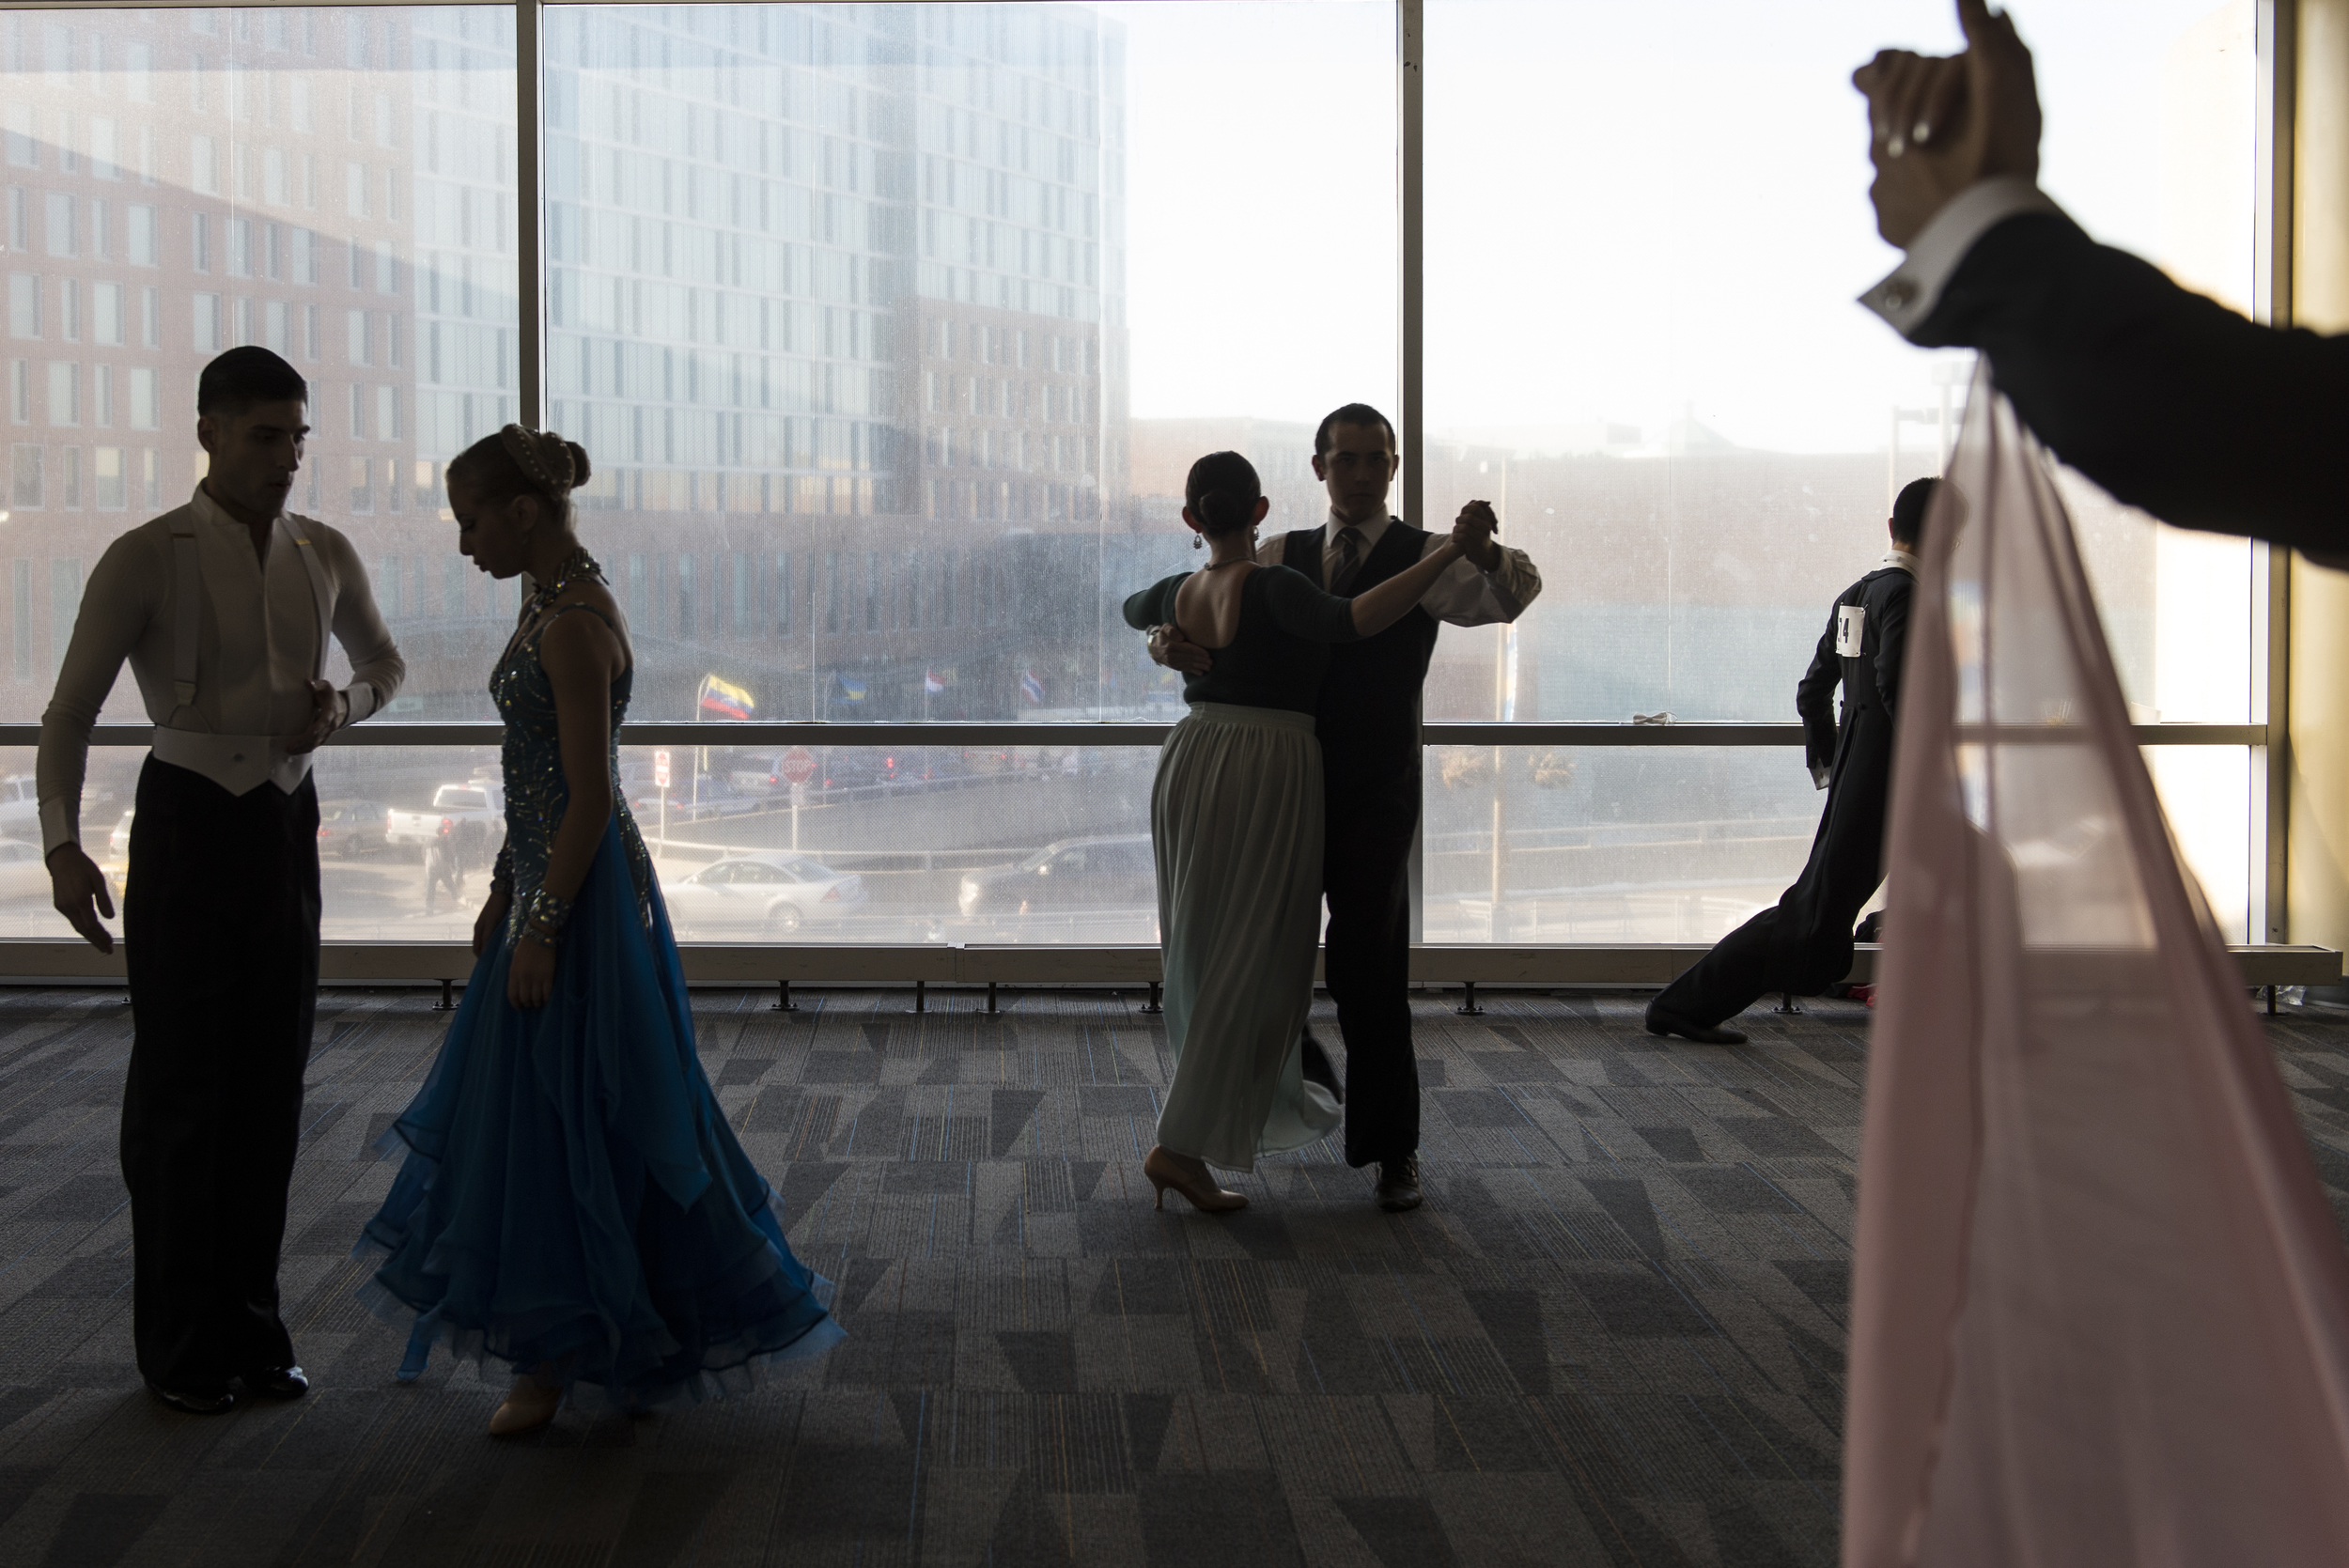 Competitors warm-up before their heats for the Youth DanceSport Challenge at the Arnold Sports Festival in Columbus, Ohio on Saturday, March 7, 2015.